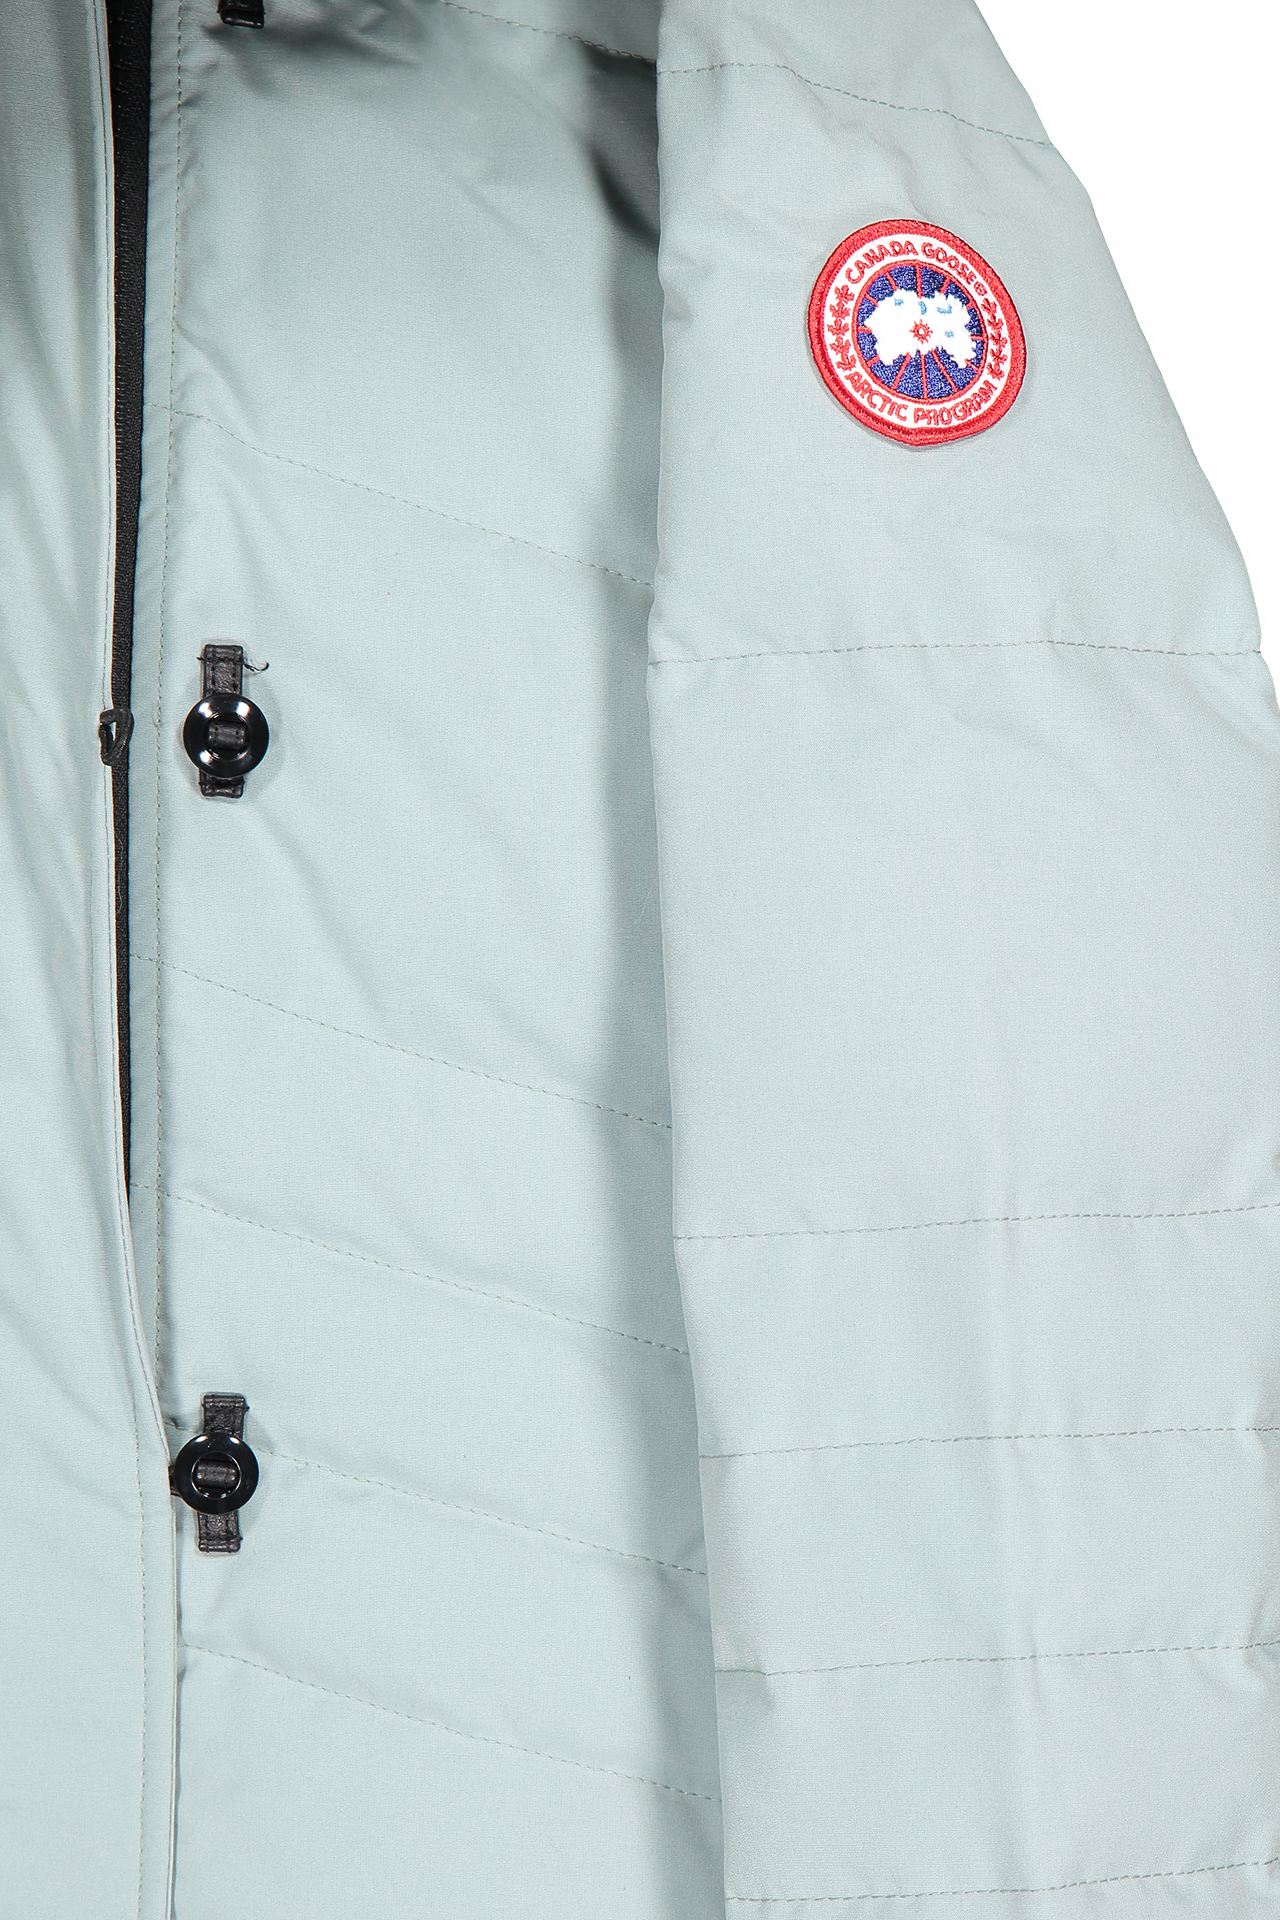 Sleeve detail image of Canada Goose Women's Lorette Parka Stormy Sky